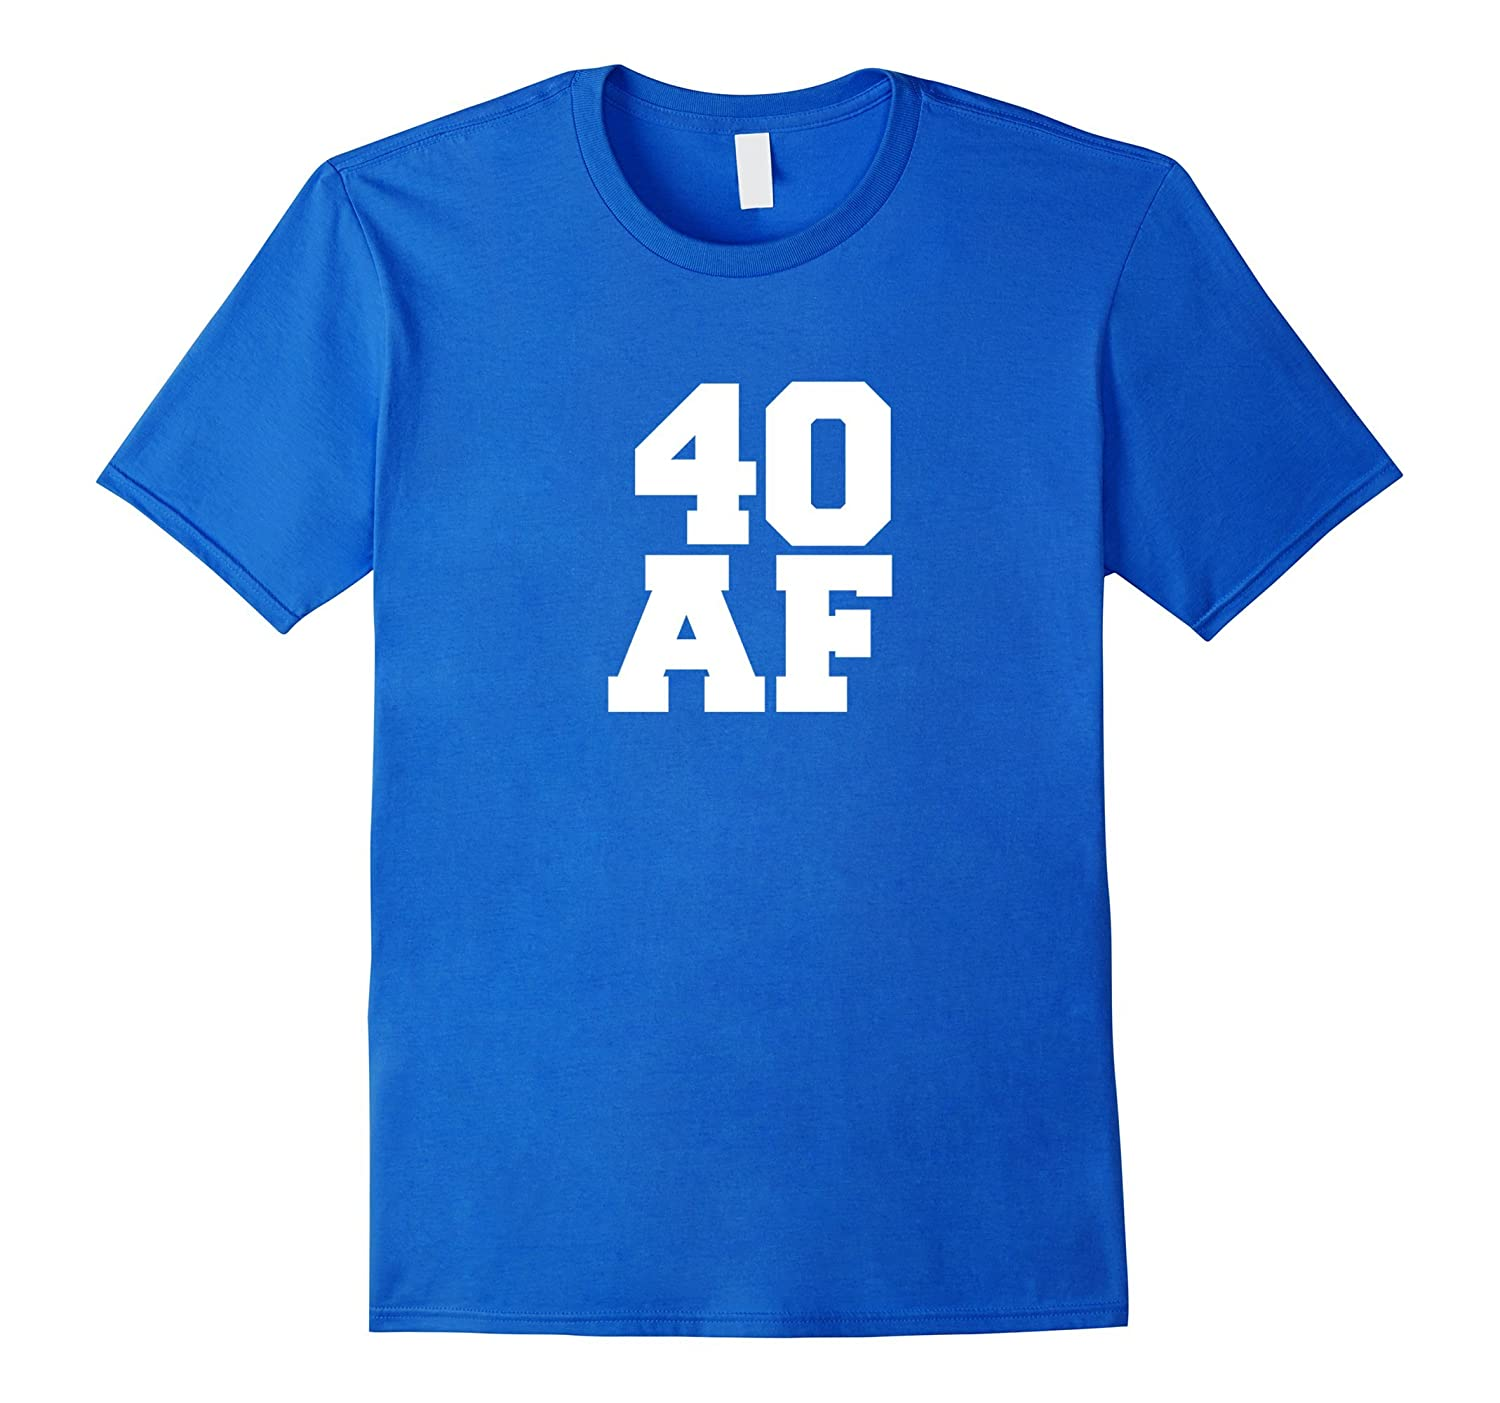 40 AF Funny T Shirt Years Old 40th Birthday Party Gift PL